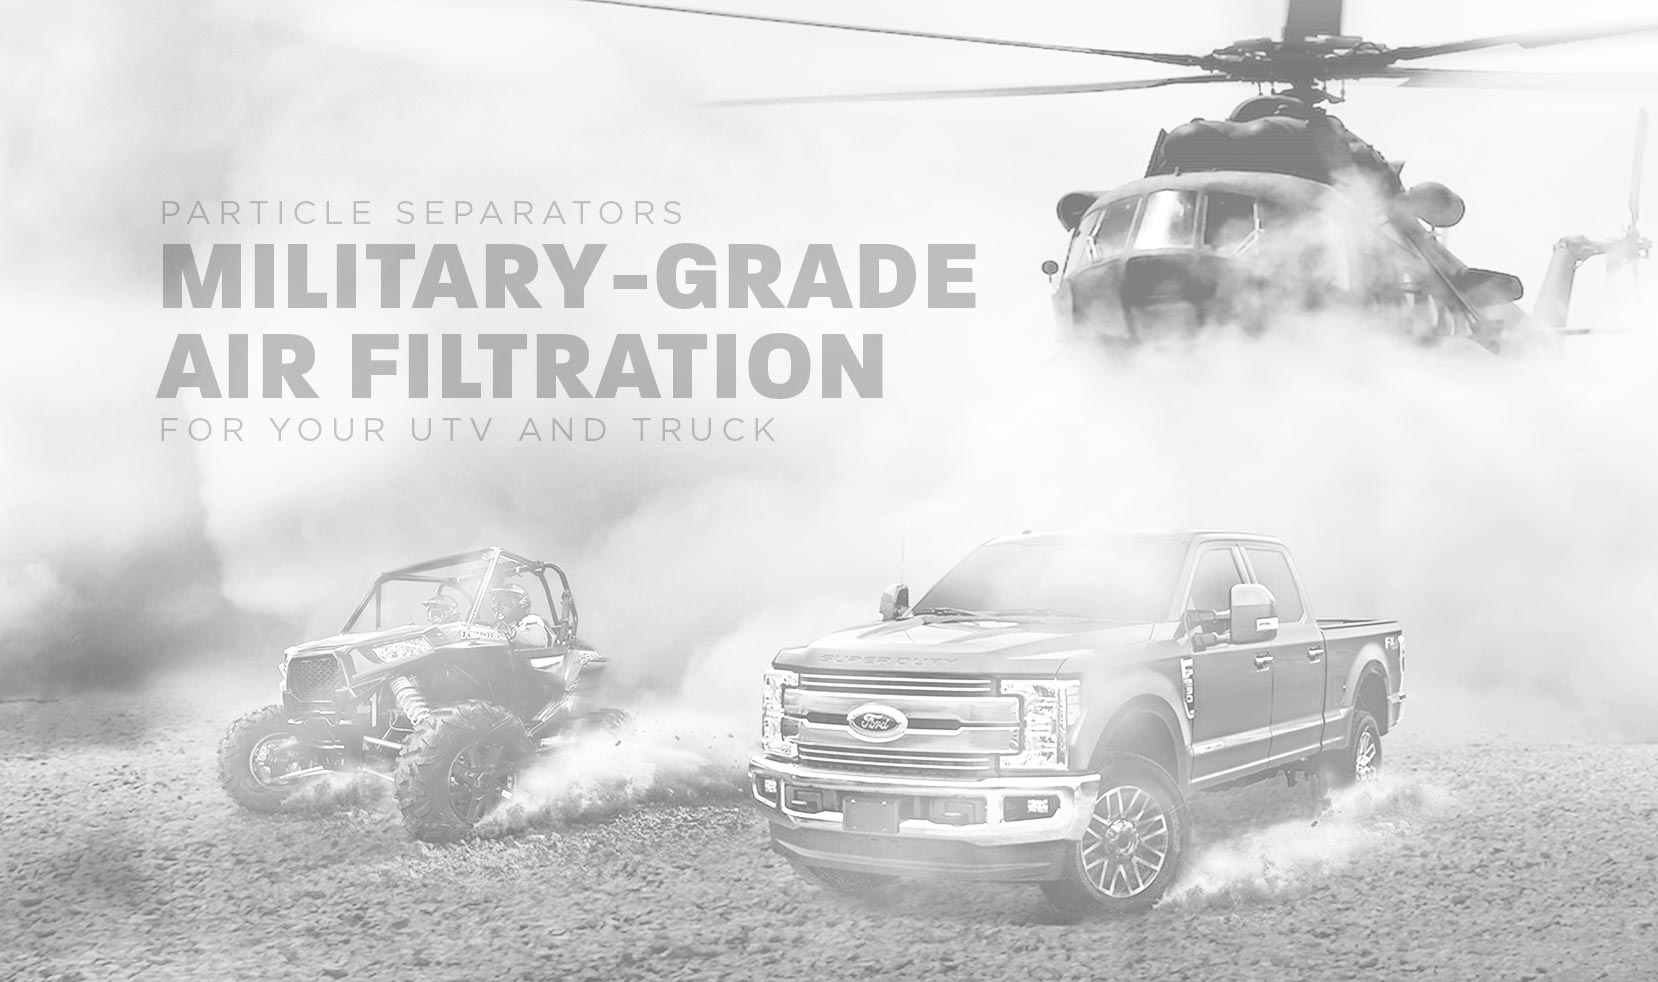 Best Air Filtration System For Your UTV, Truck or Jeep